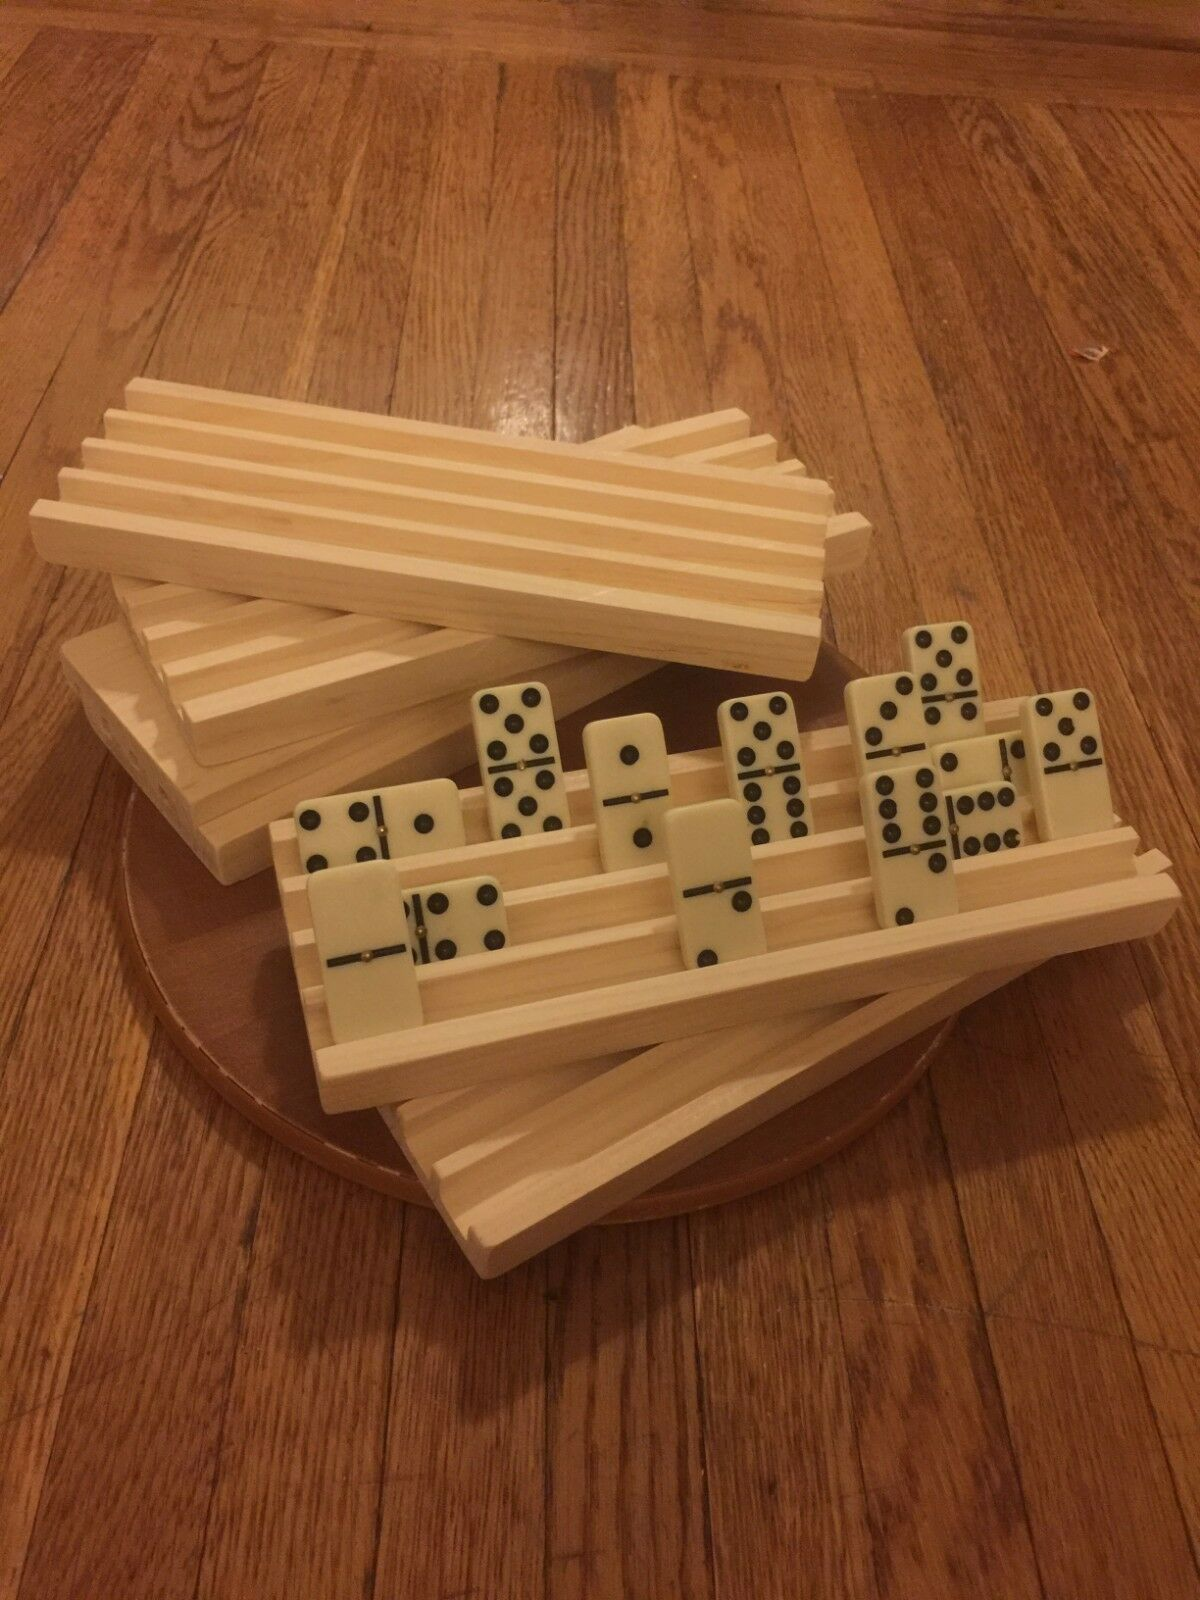 4 HANDMADE WOODEN DOMINO HOLDERS MEXICAN TRAIN 4 ROWS ON